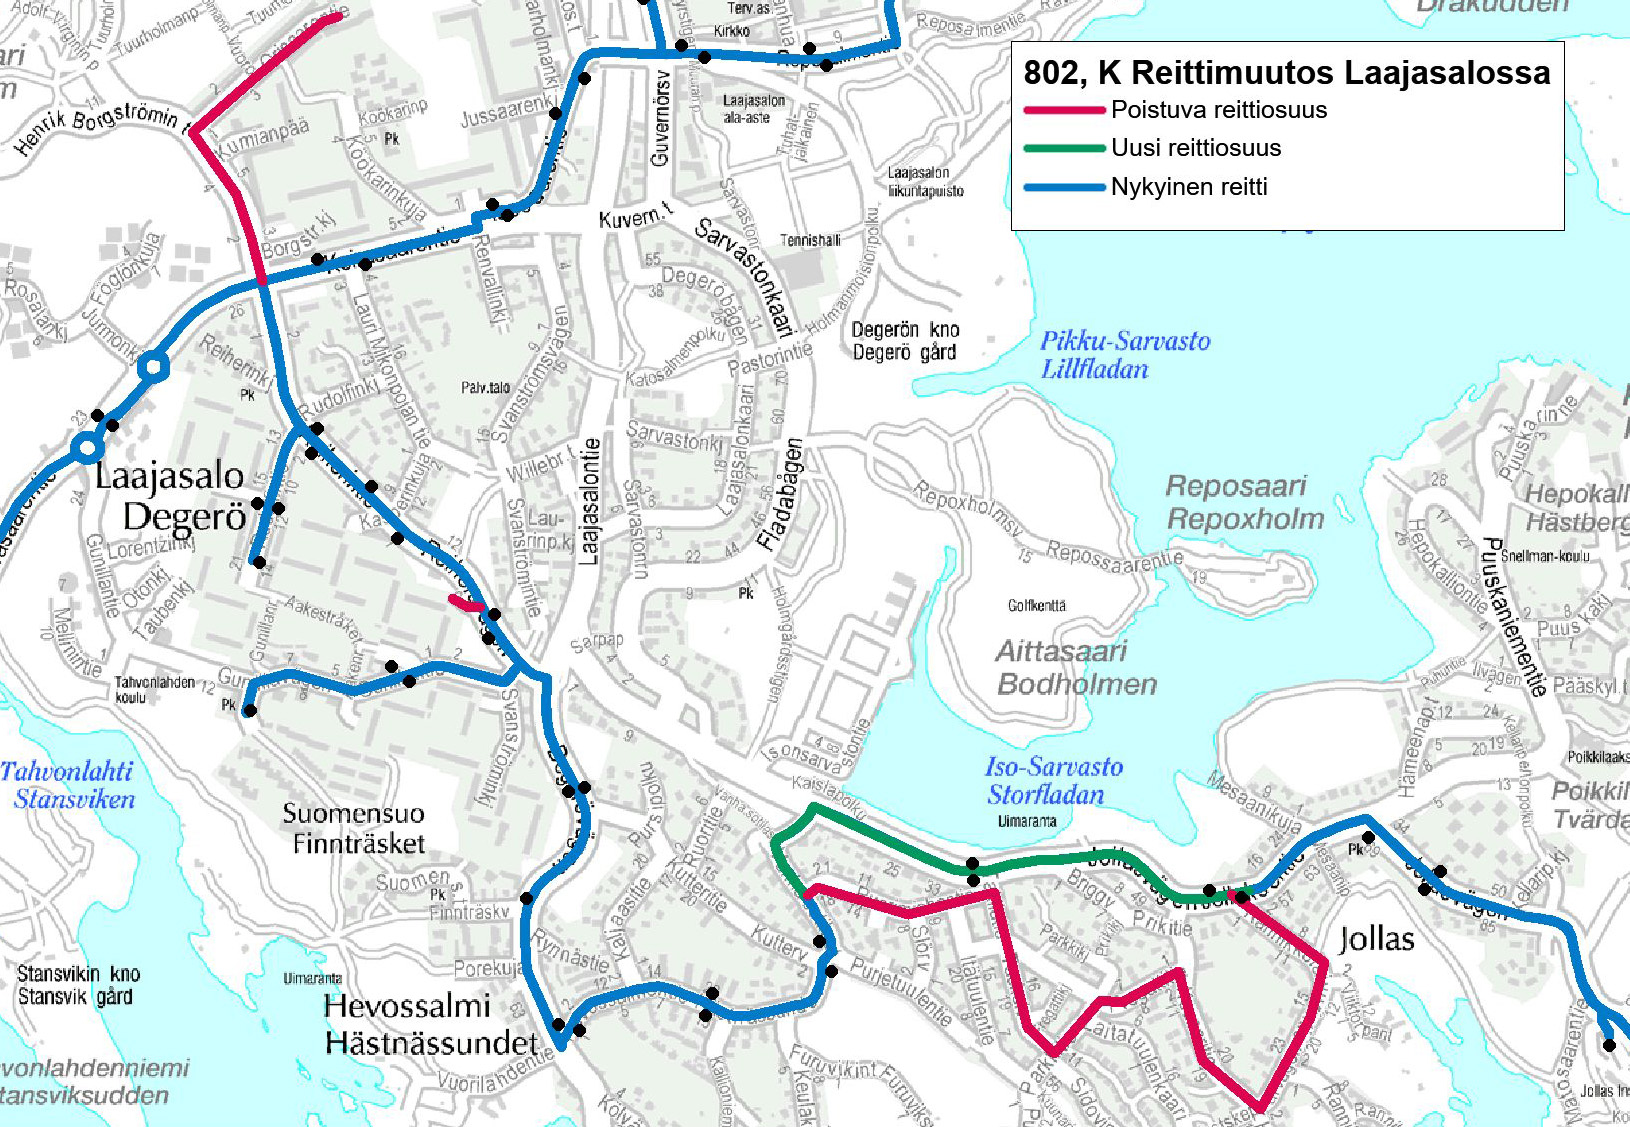 Route change for neighborhood route 802 from 3 October | HSL